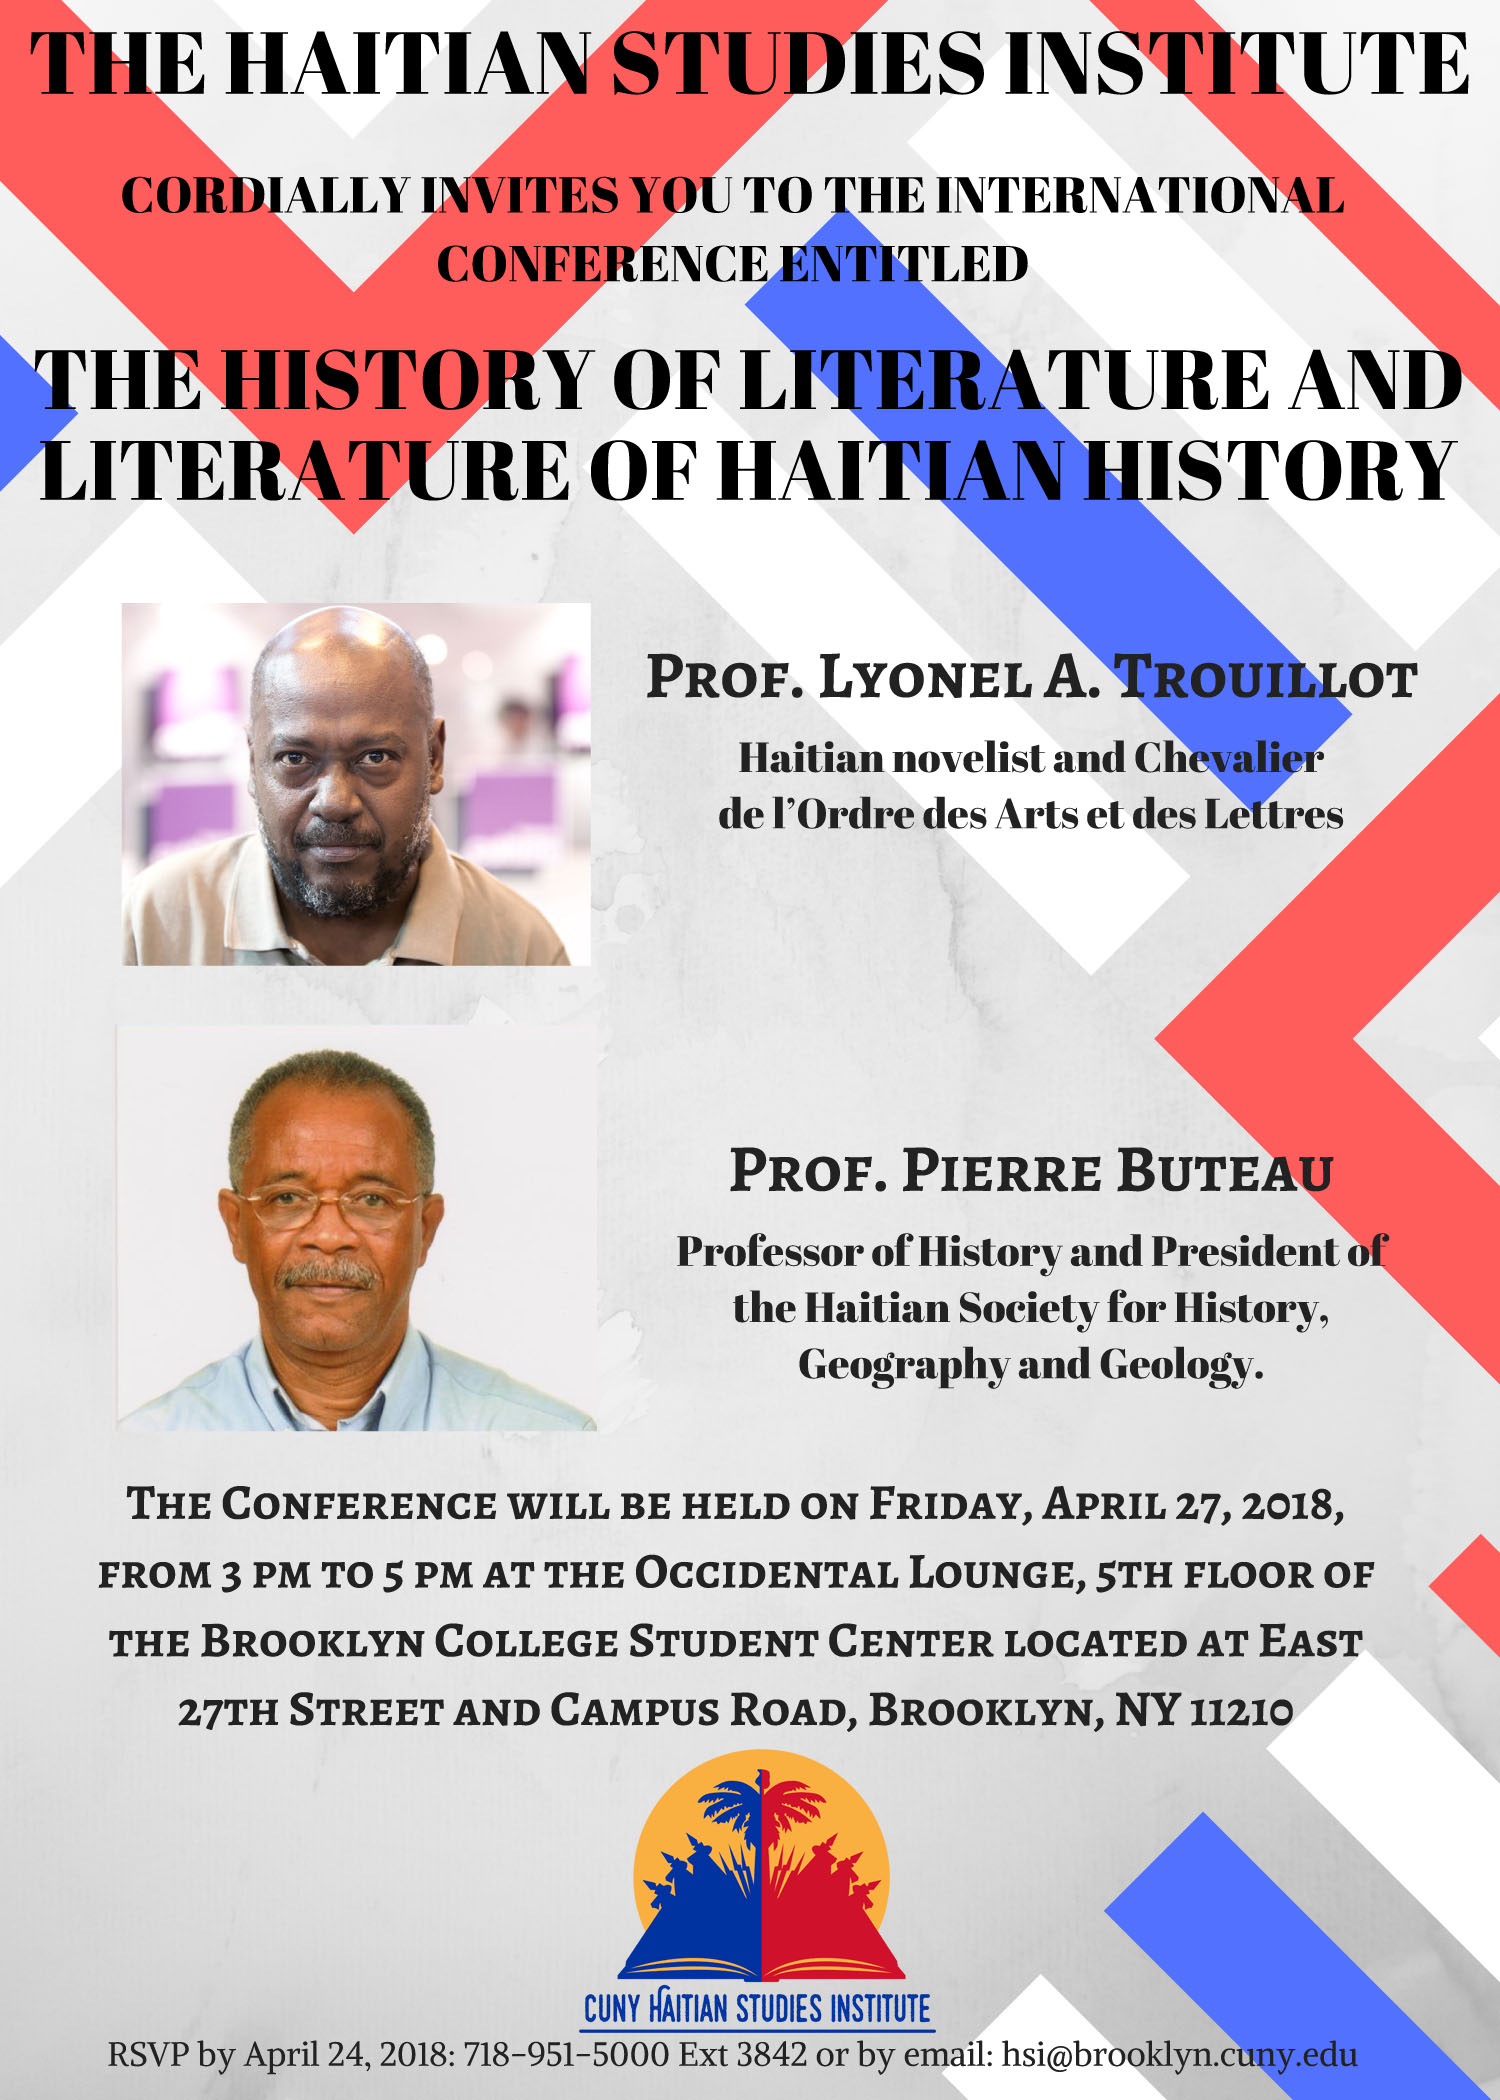 <p>&nbsp;The History of Literature And Literature of Haitian History</p>